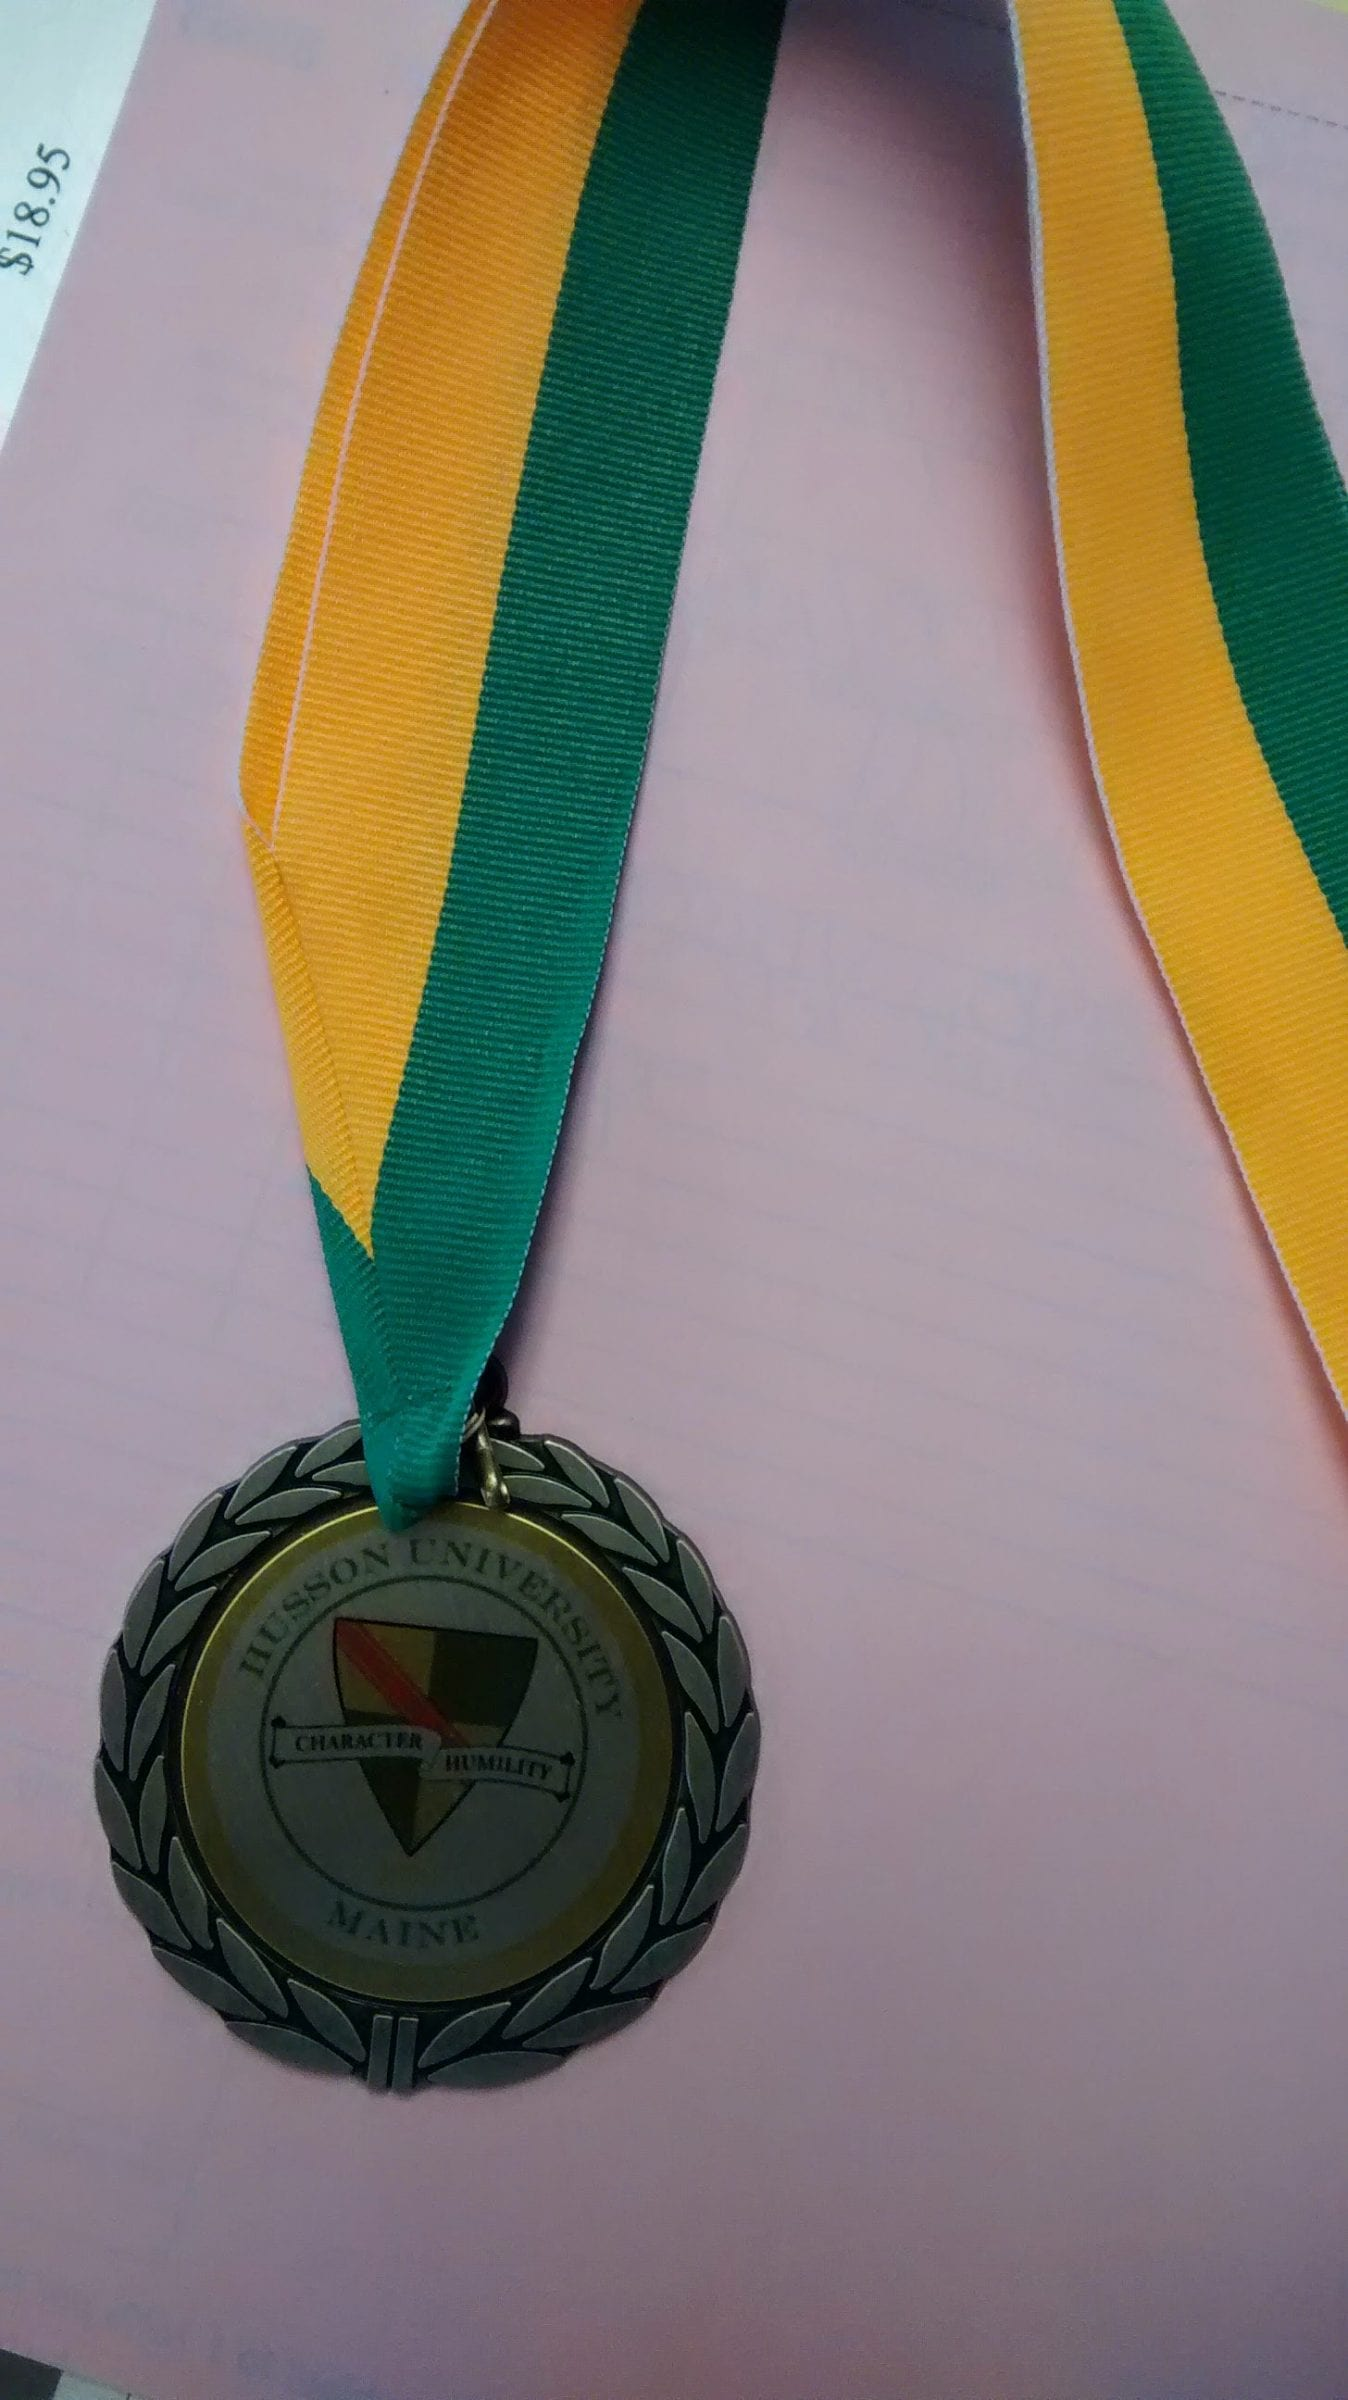 Medallions, Pins & Ribbons - Awards, Signs & Trophies